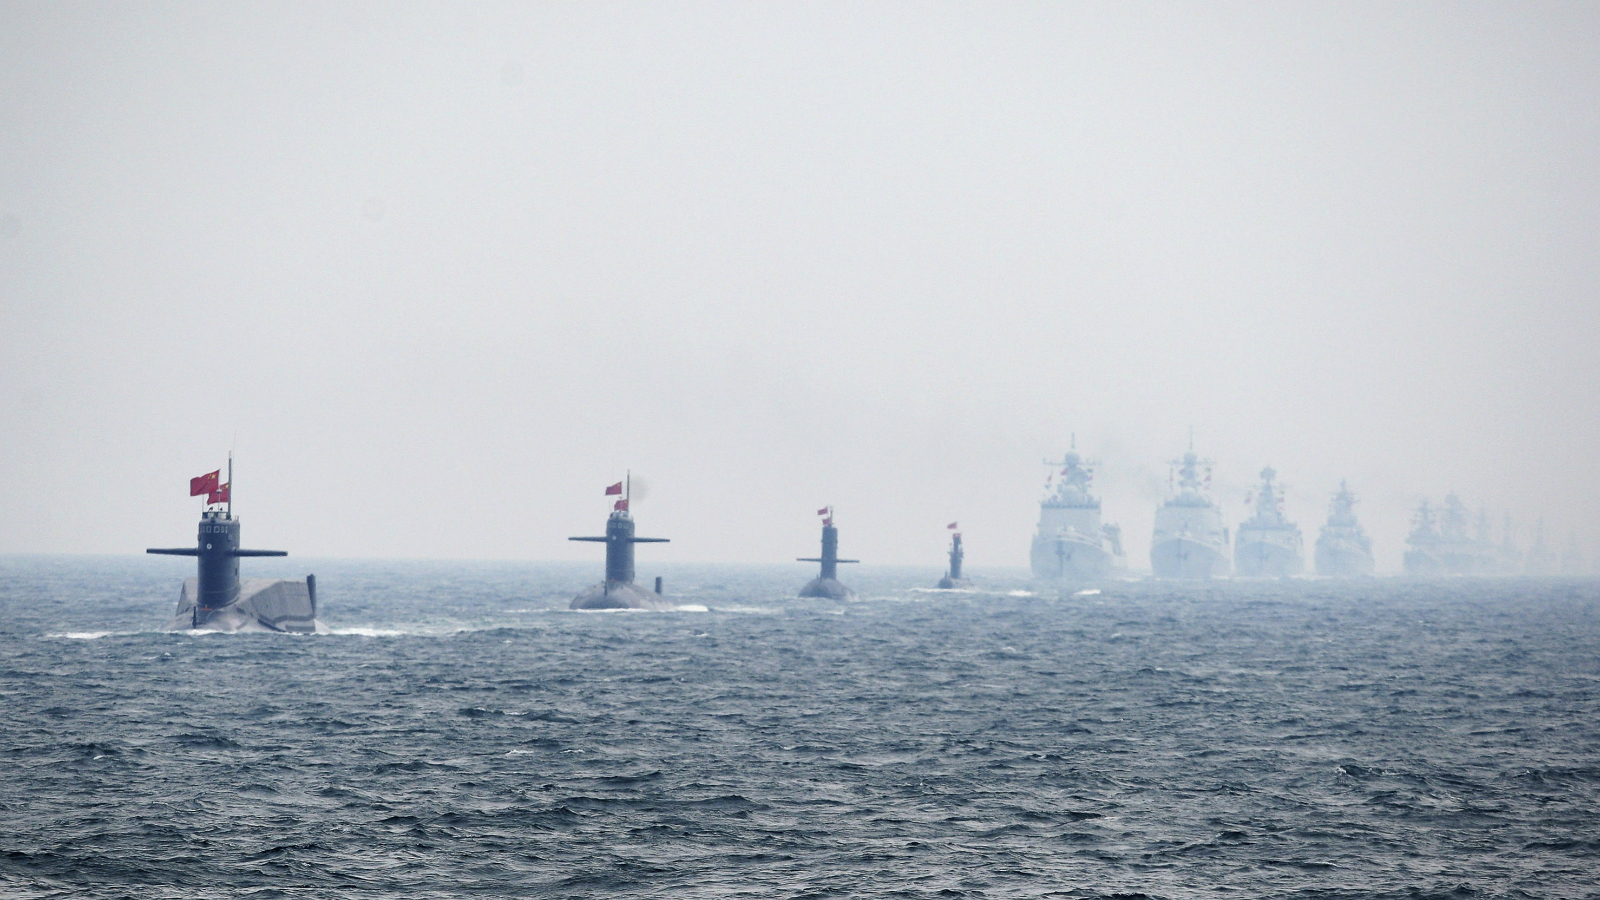 Chinese Navy submarines and warships take part in an international fleet review to celebrate the 60th anniversary of the founding of the People's Liberation Army Navy in Qingdao, Shandong province, April 23, 2009.